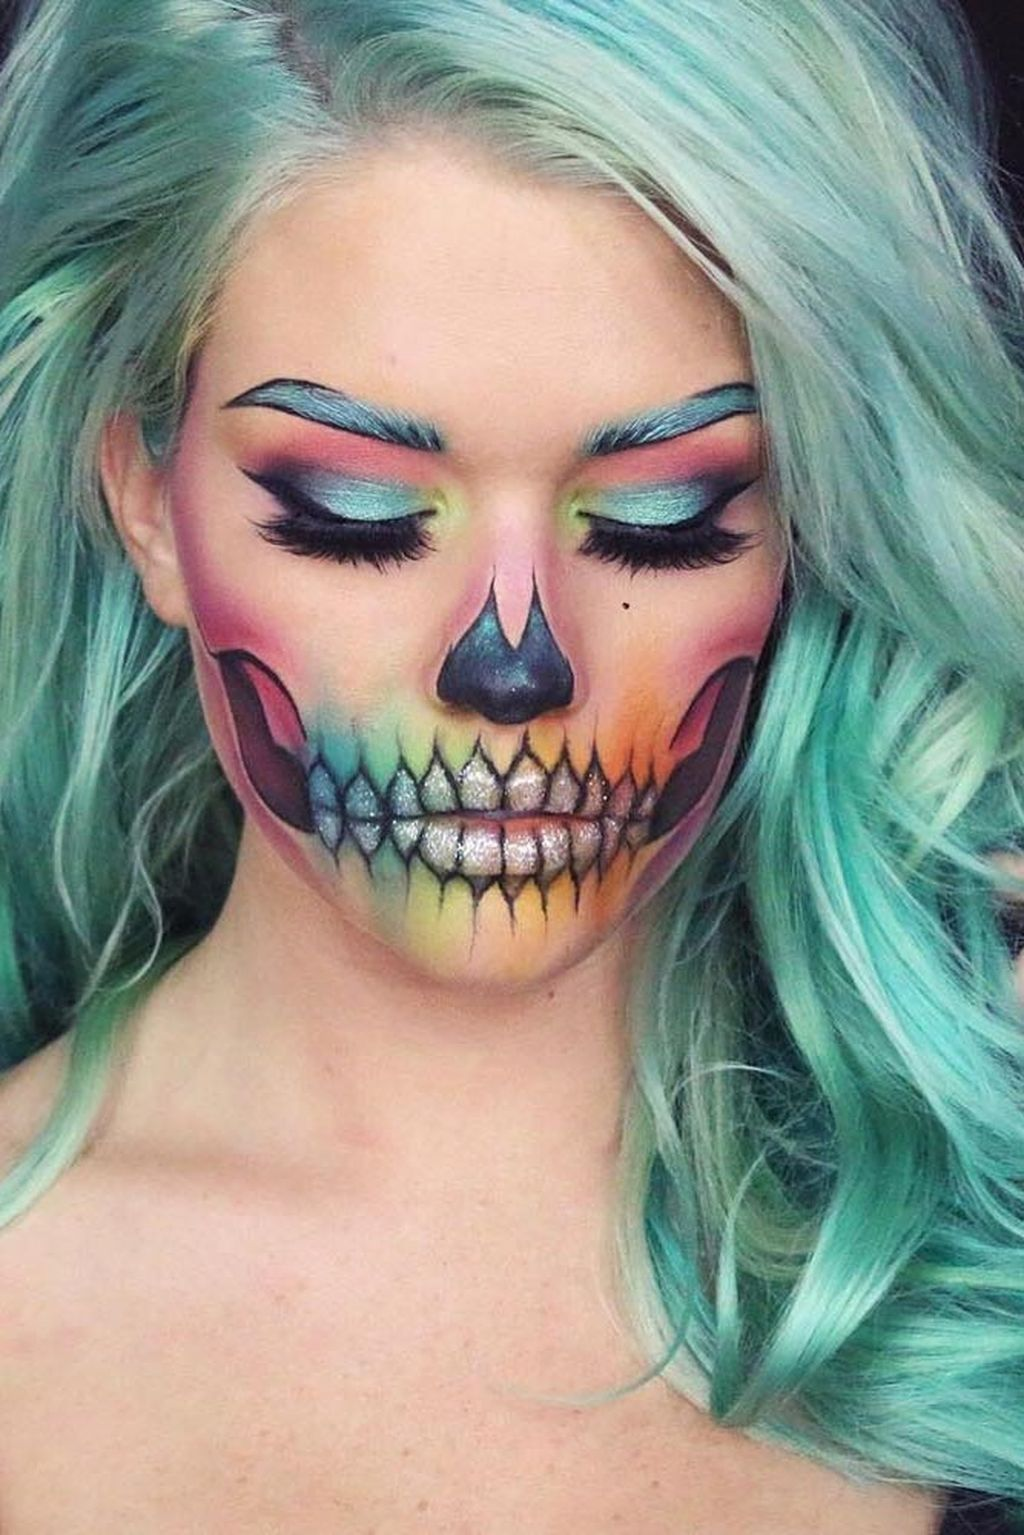 Stitch Halloween Makeup 25 Pretty Halloween Makeup Ideas To Look Scary And Cute